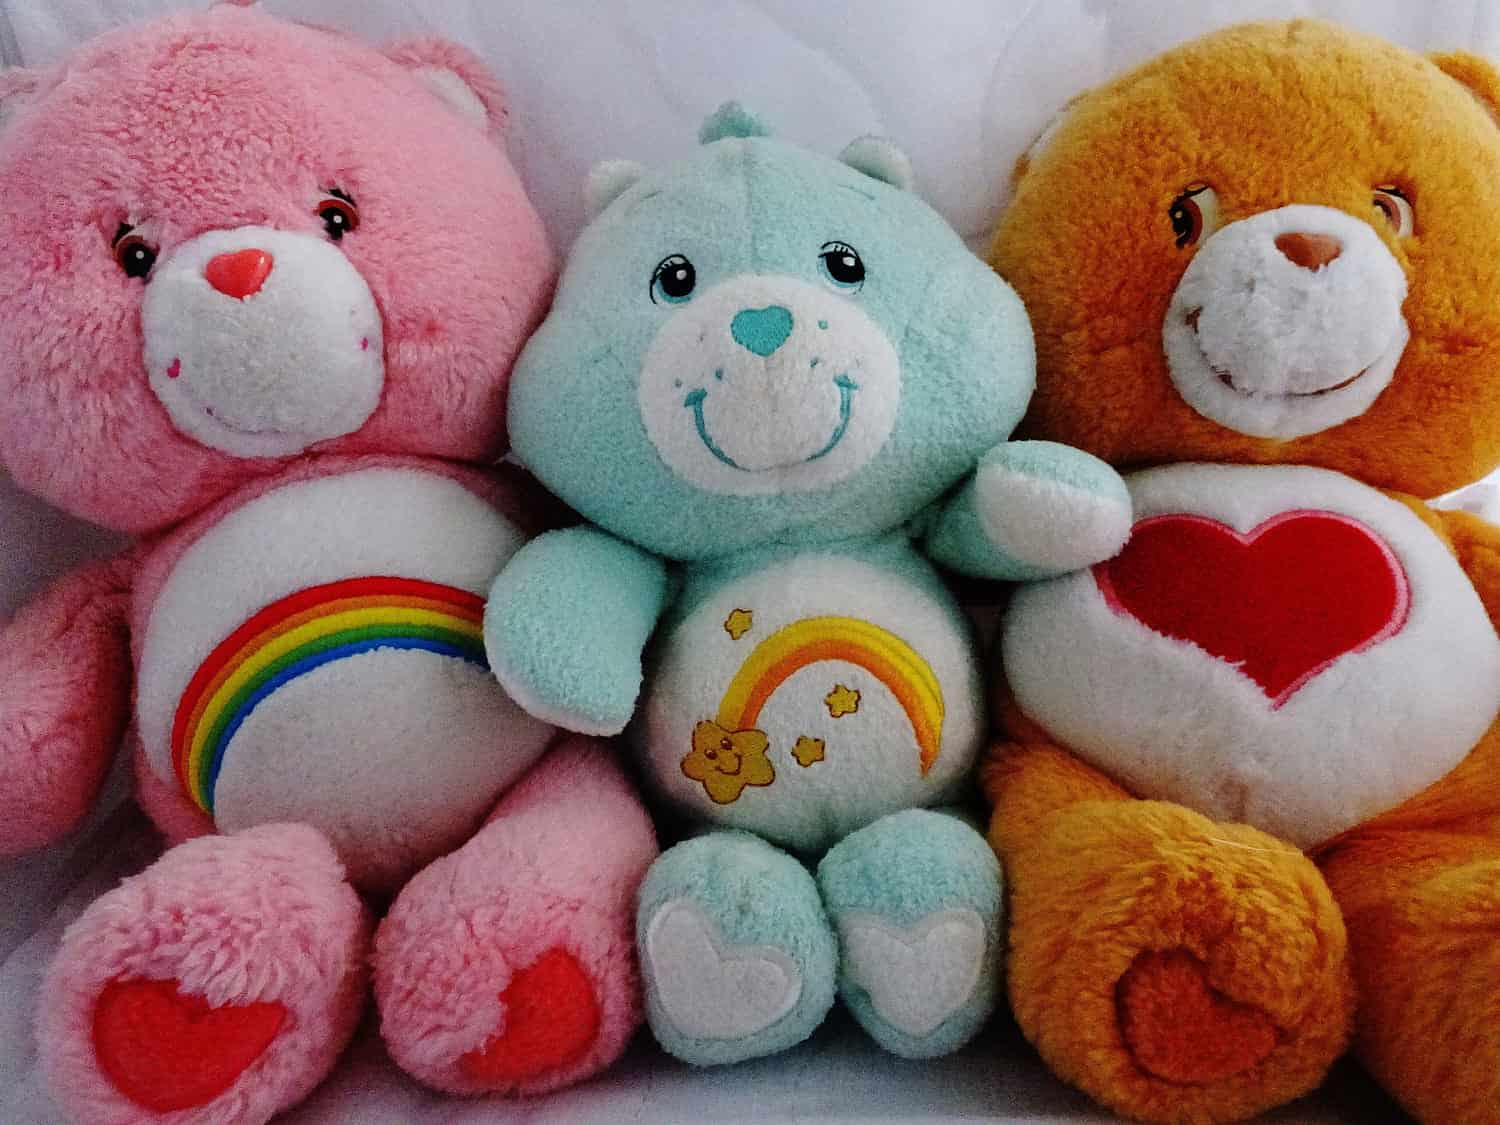 All '80s children loved Care Bears